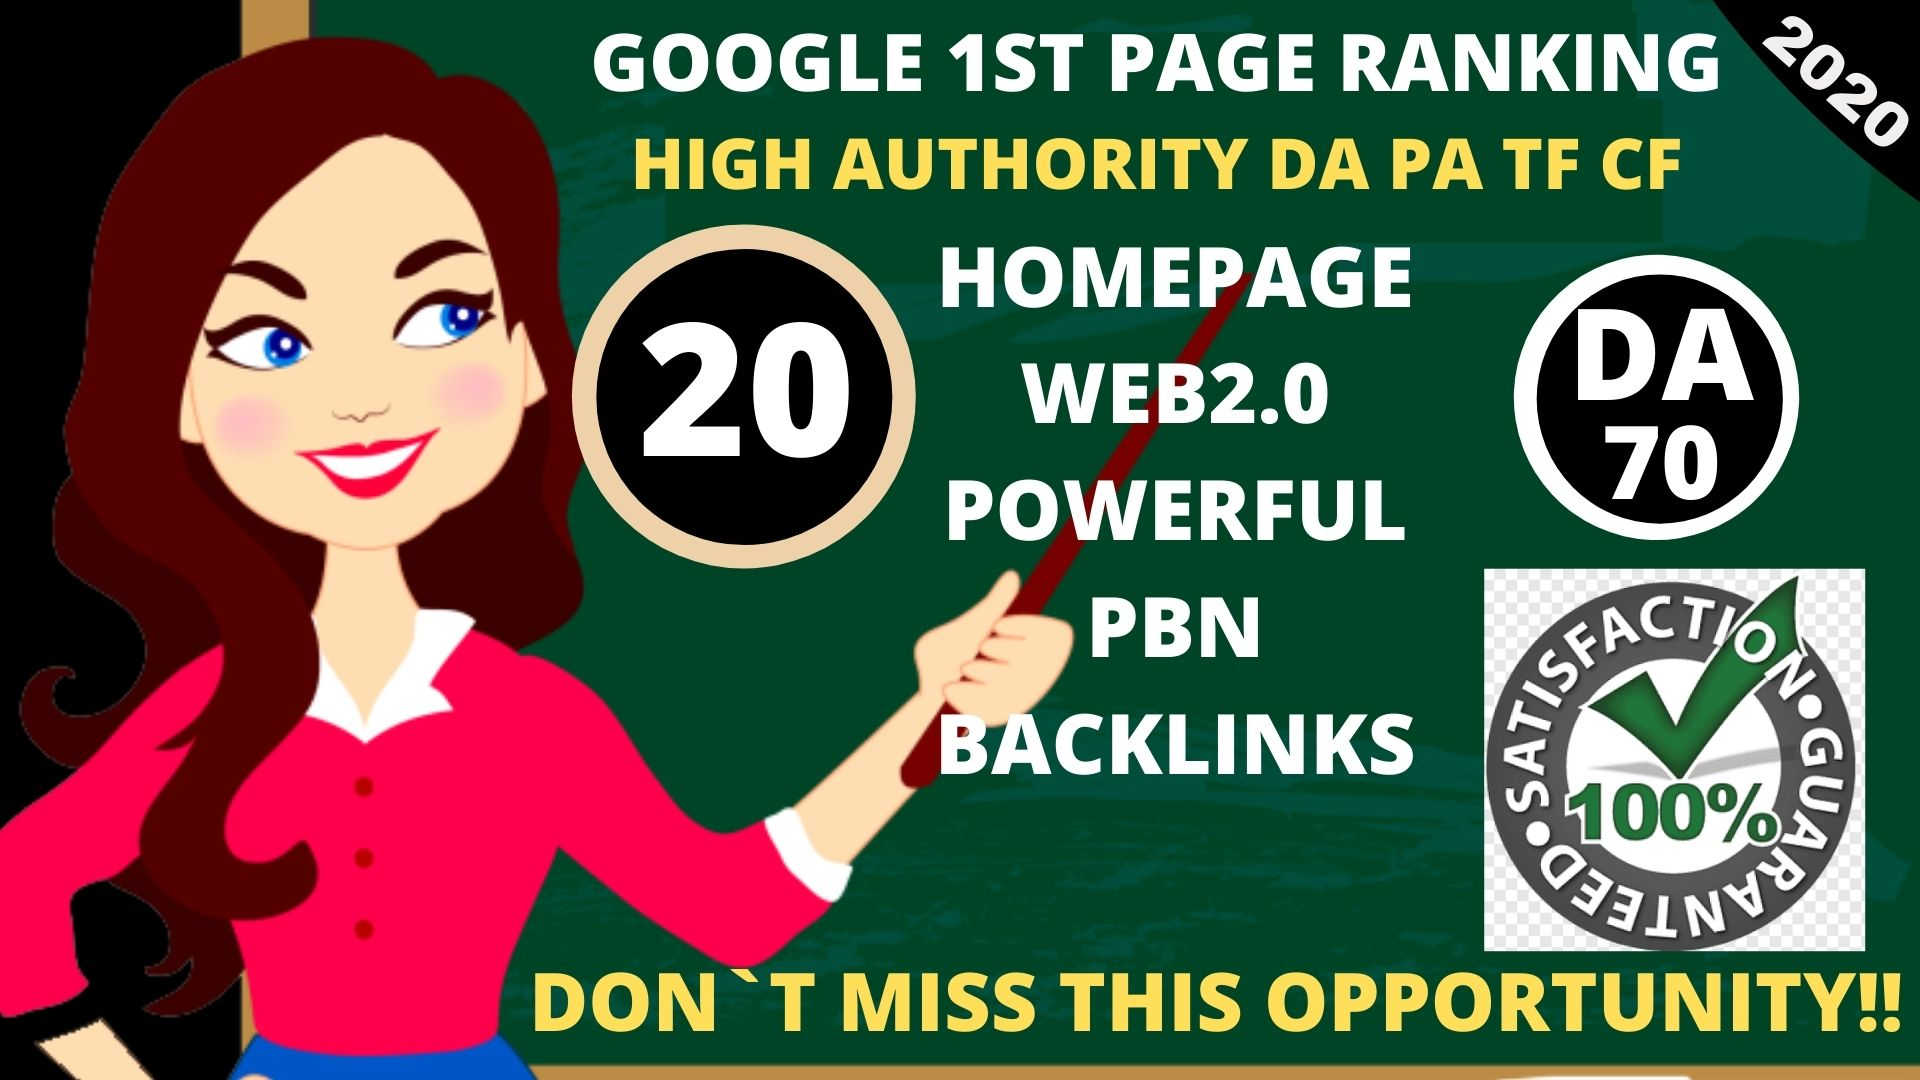 DA 70+ PA Web2.0 20 Pbn Backlink in 100 dofollow in unique site